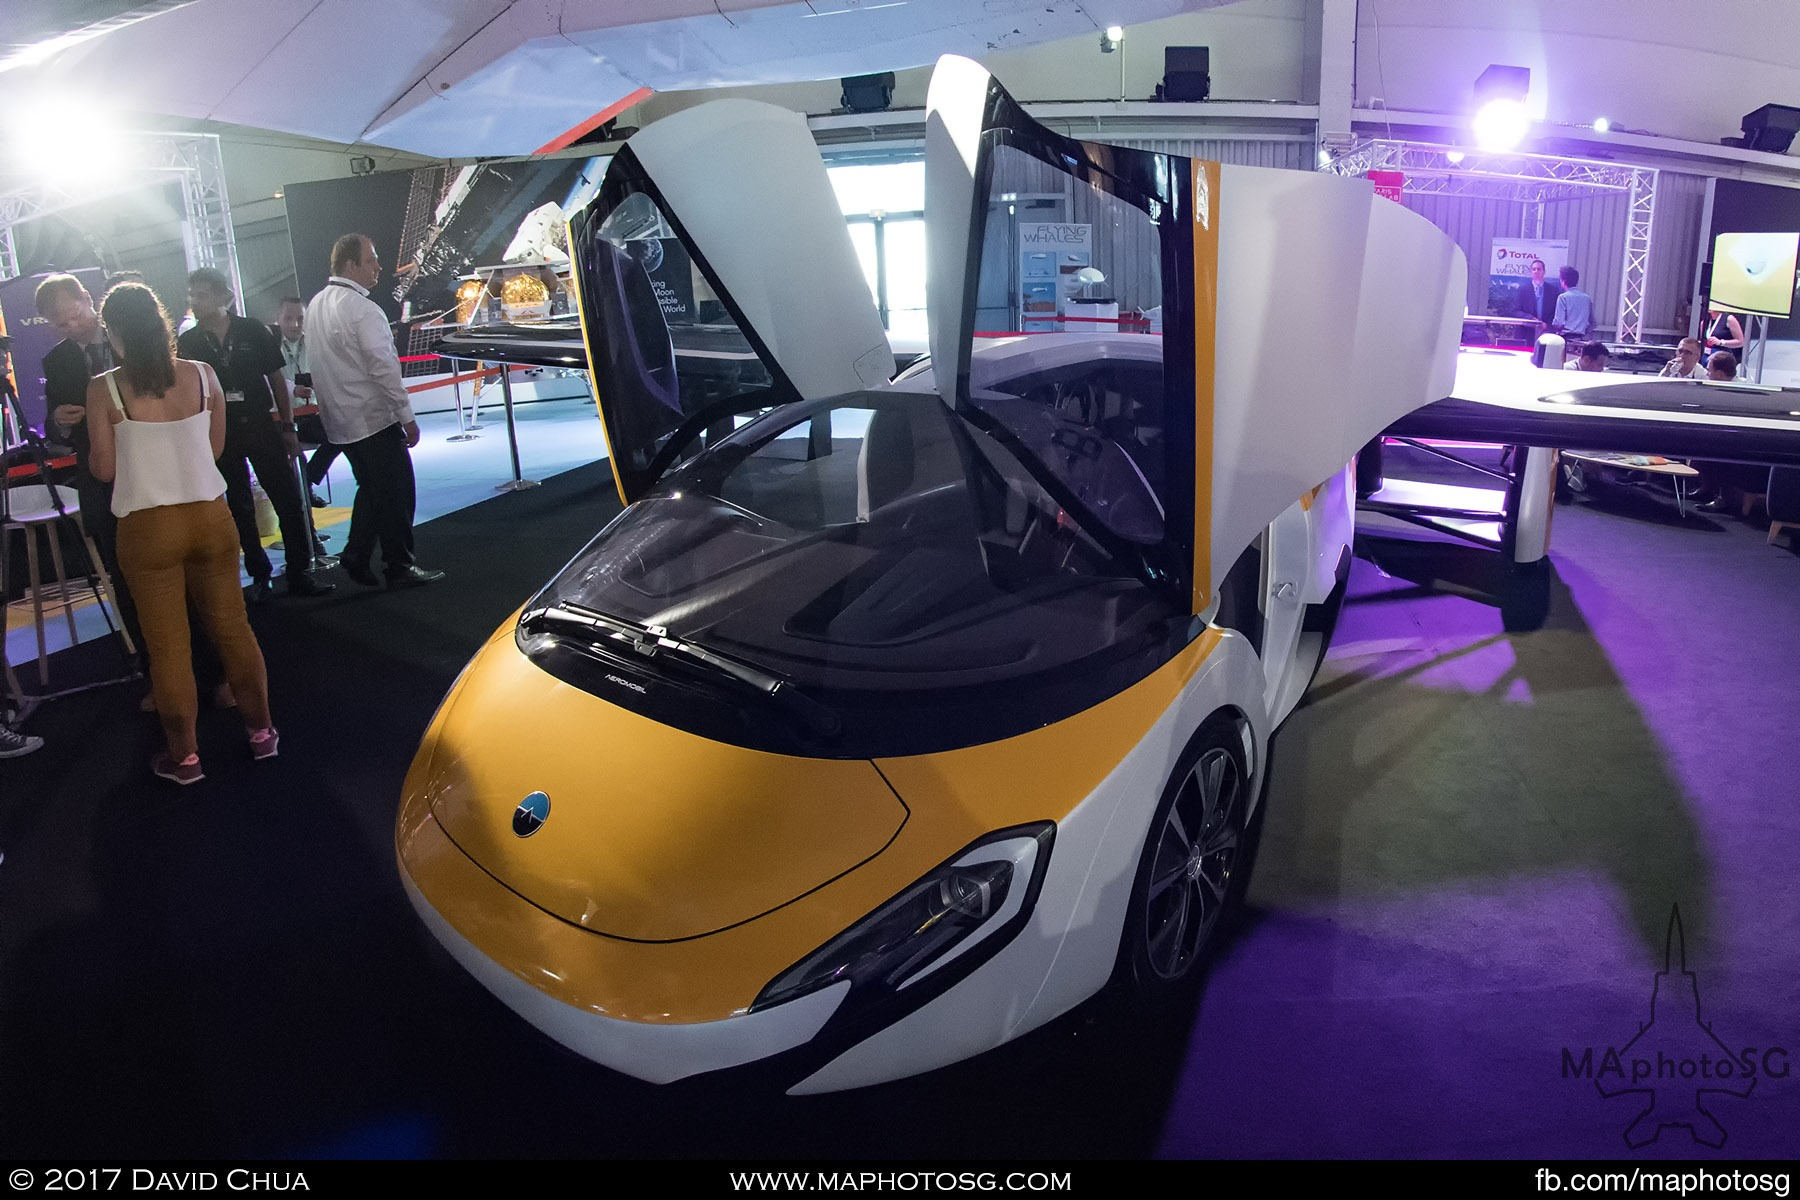 23. Slovakian startup AeroMobil unveiled it's new flying car as part of the Paris Air Lab, a new exhibition space dedicated to research and innovation. The car is able to go 160 km/h on the road and about 260 km/h in the air. At a cost of 1.2M to 1.5M Euros which is comparable to a small aircraft, one will get an aircraft and a sports car.